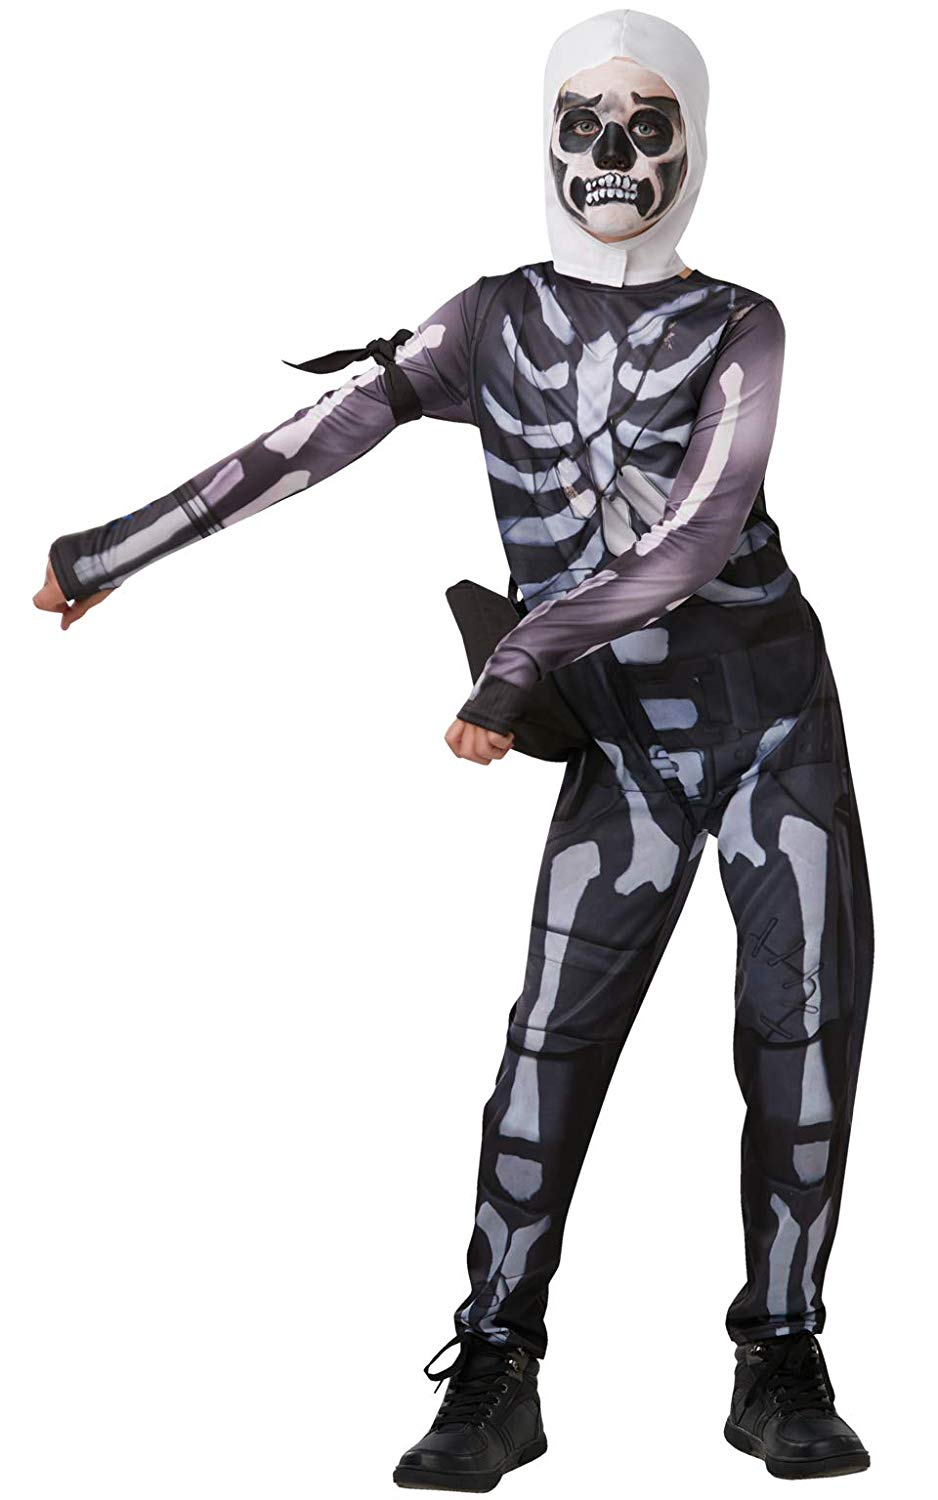 Fortnite Skull trooper skins gaming costume 300194